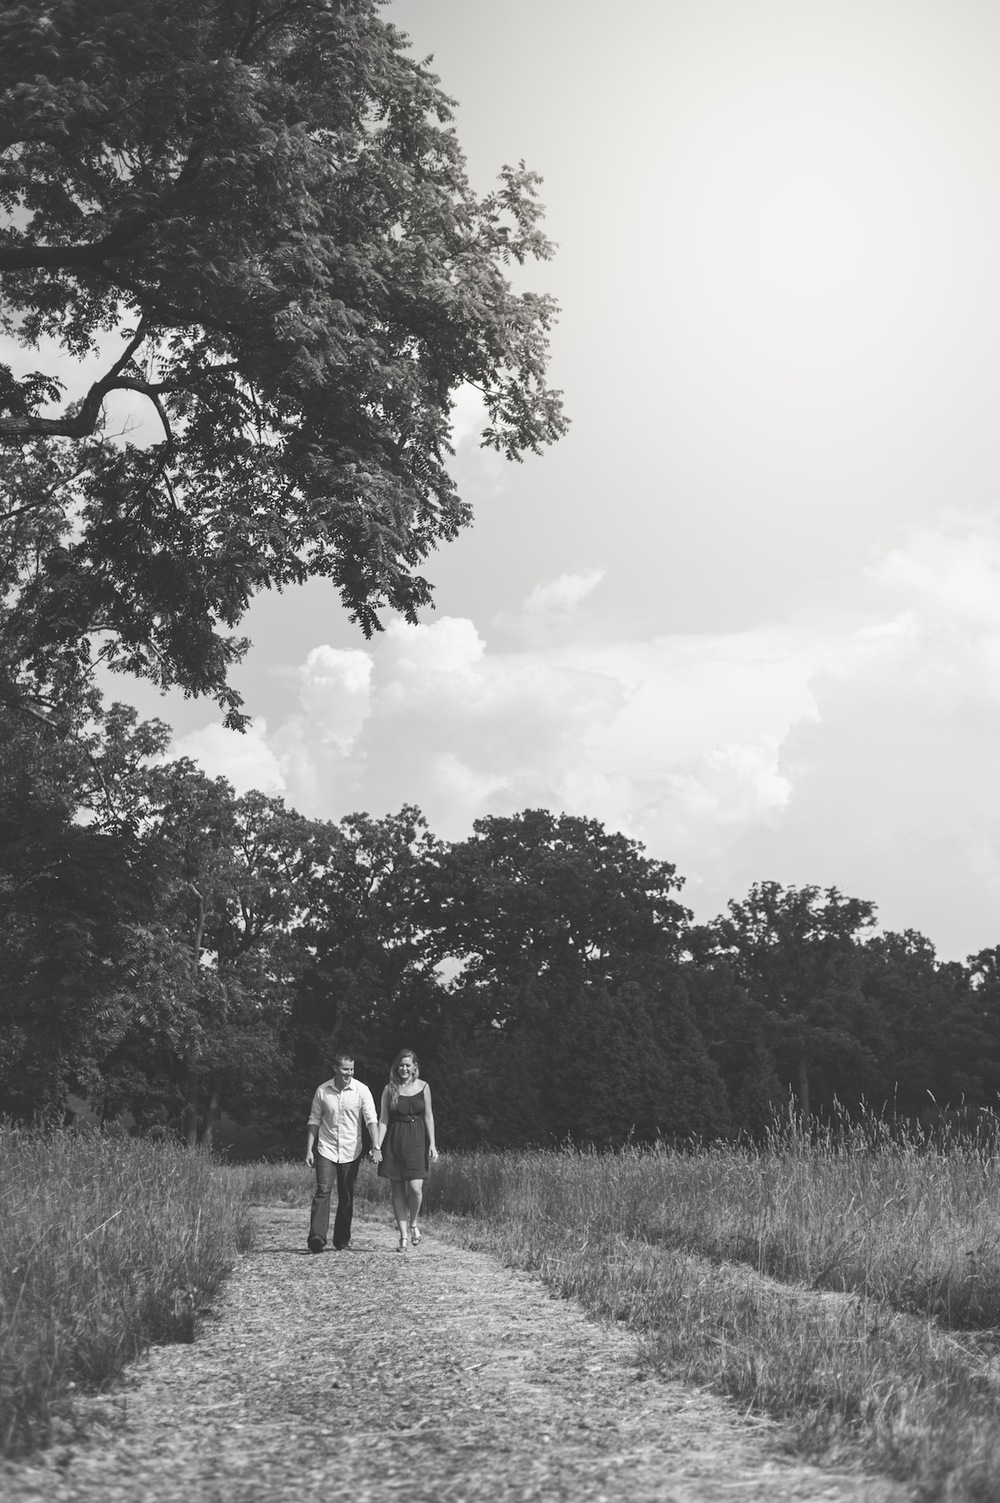 20130623161048_morton_engagement_photography.jpg